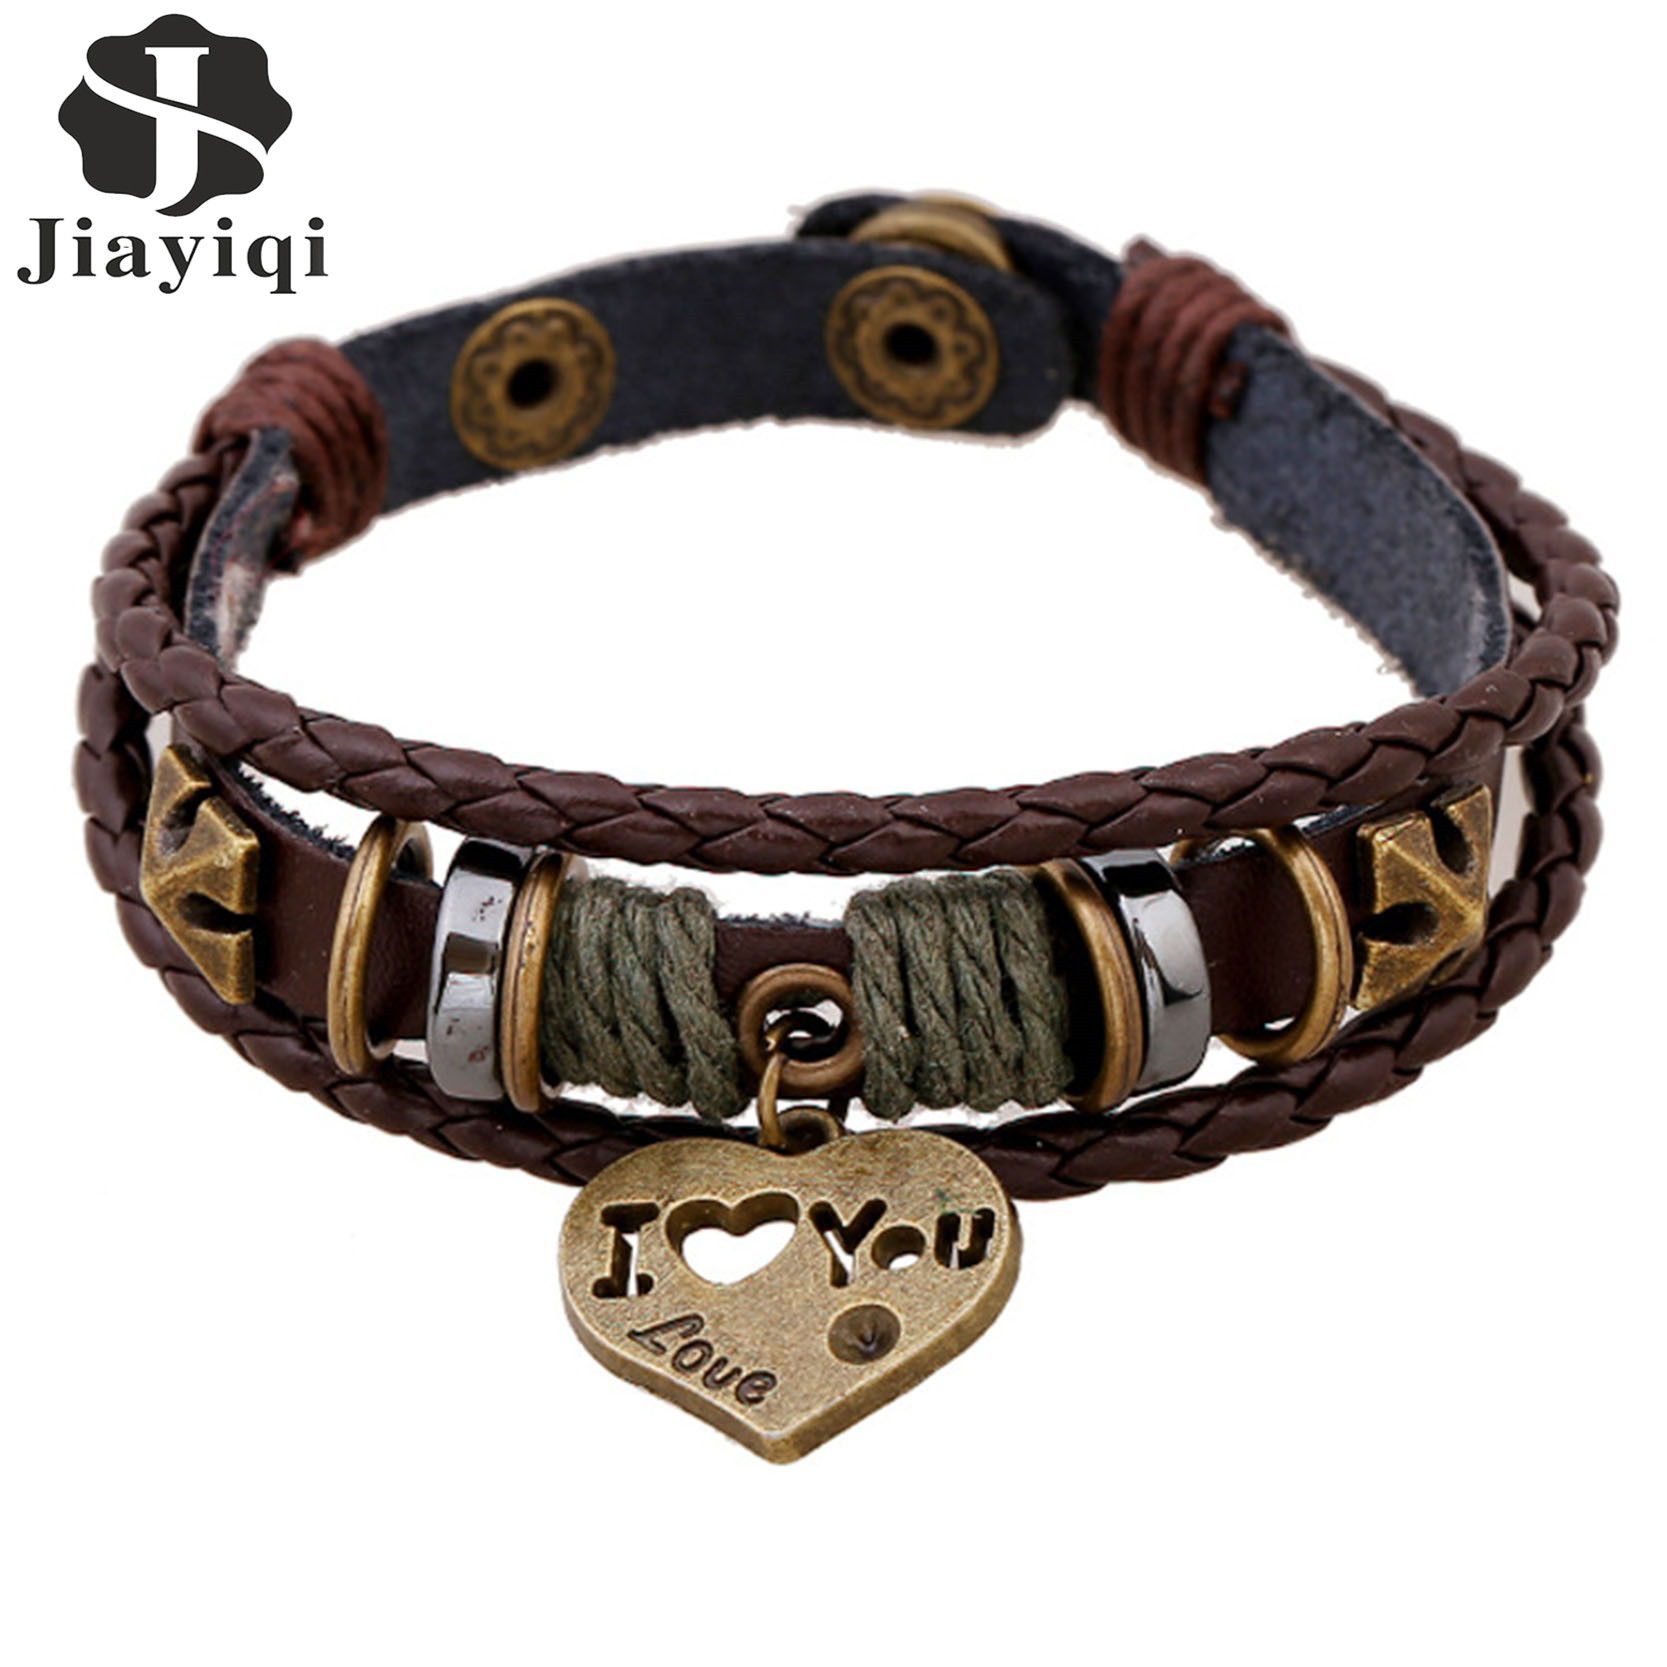 Jiayiqi Fashion Retro Beads Brown Multistrands Wrap Leather Bracelets For  Men Jewelry With Heart